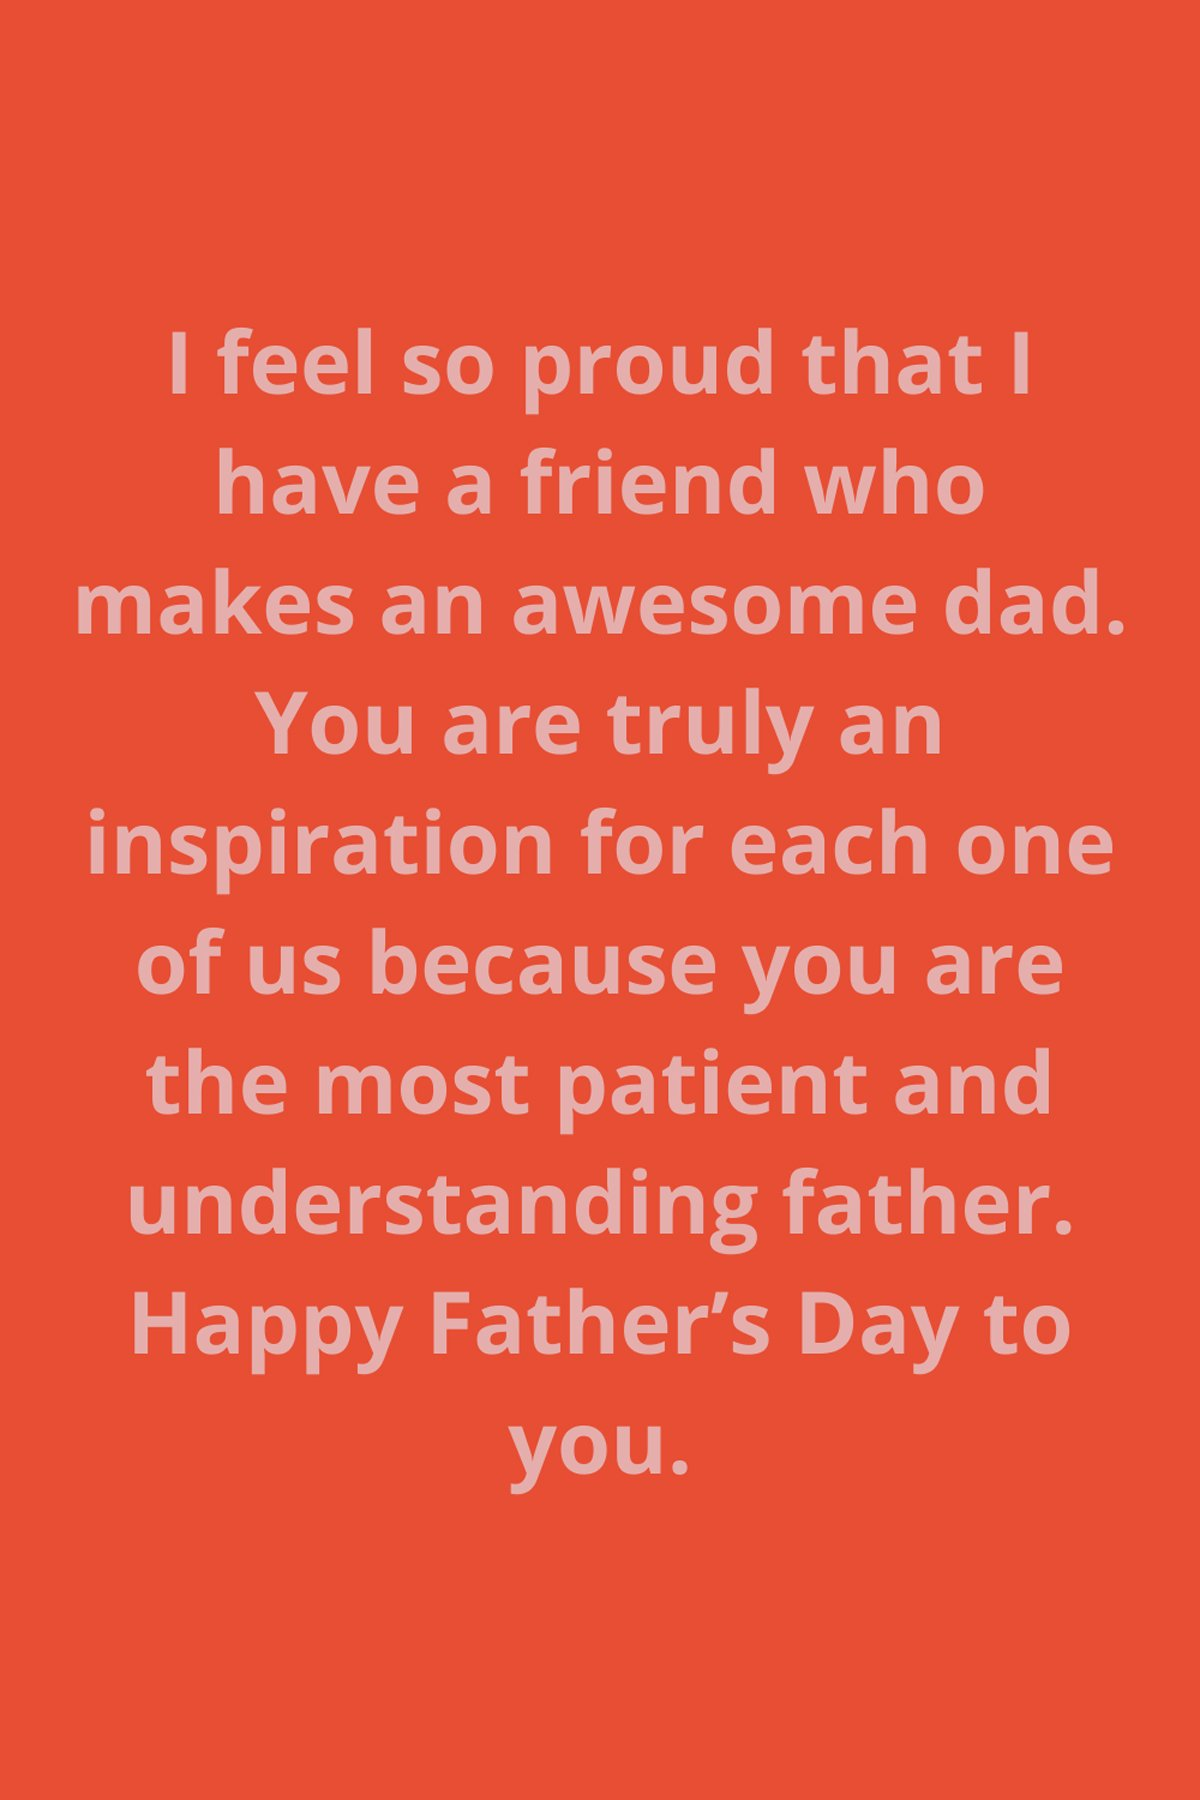 Dads Day Proud sayings